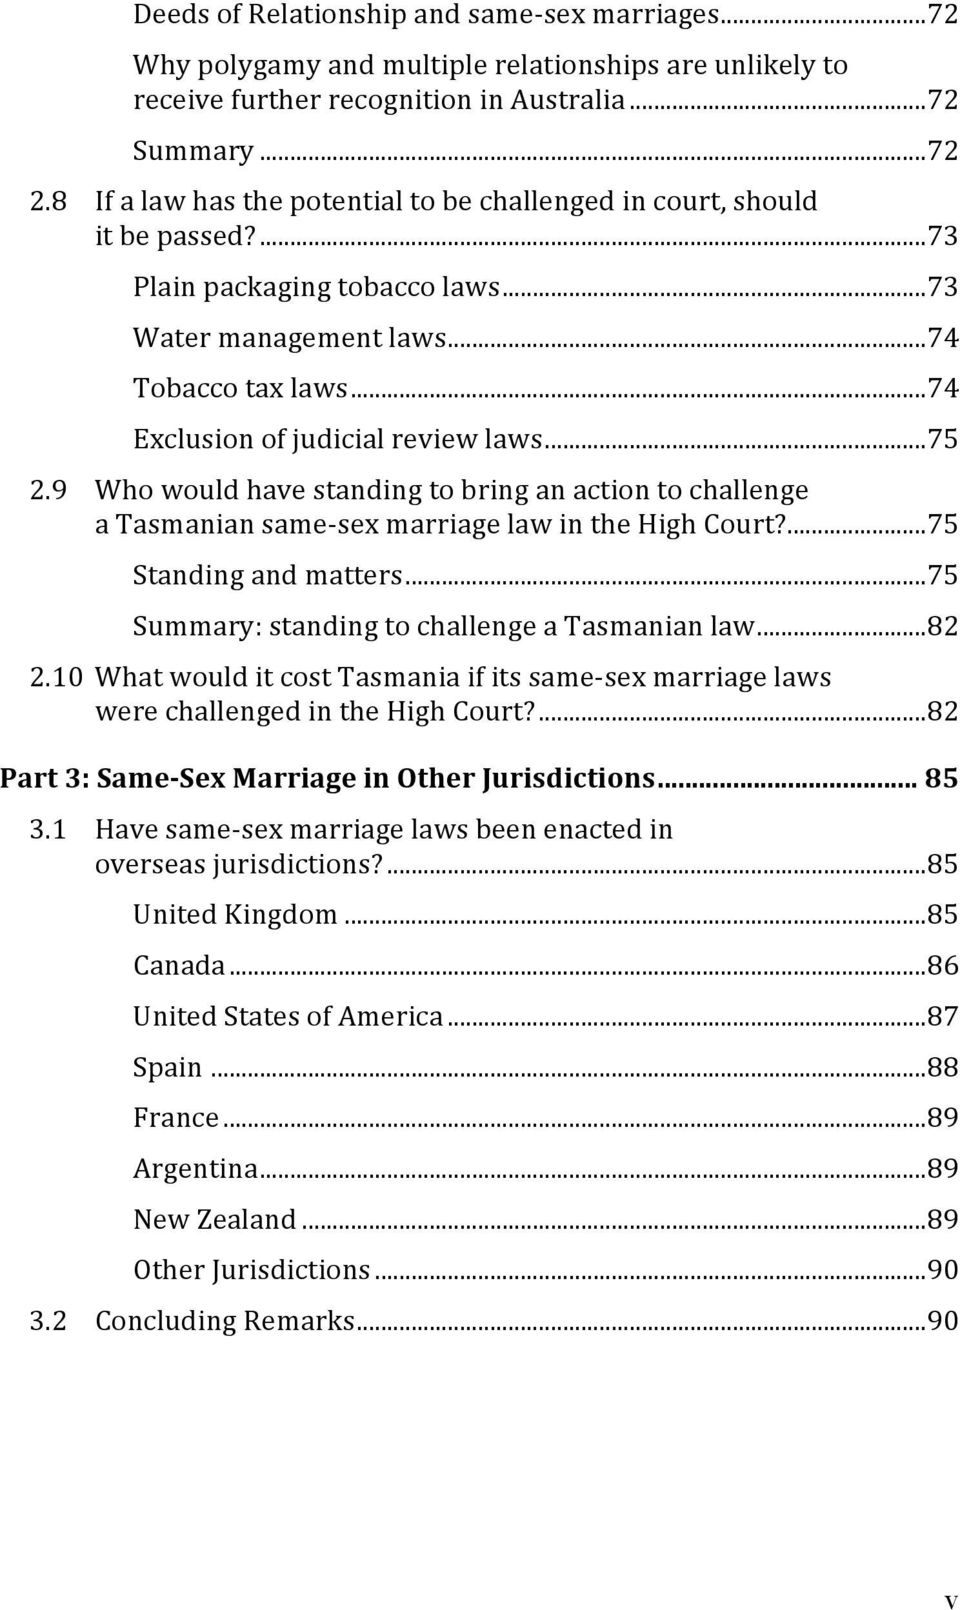 .. 74 Exclusion of judicial review laws... 75 2.9 Who would have standing to bring an action to challenge a Tasmanian same- sex marriage law in the High Court?... 75 Standing and matters.